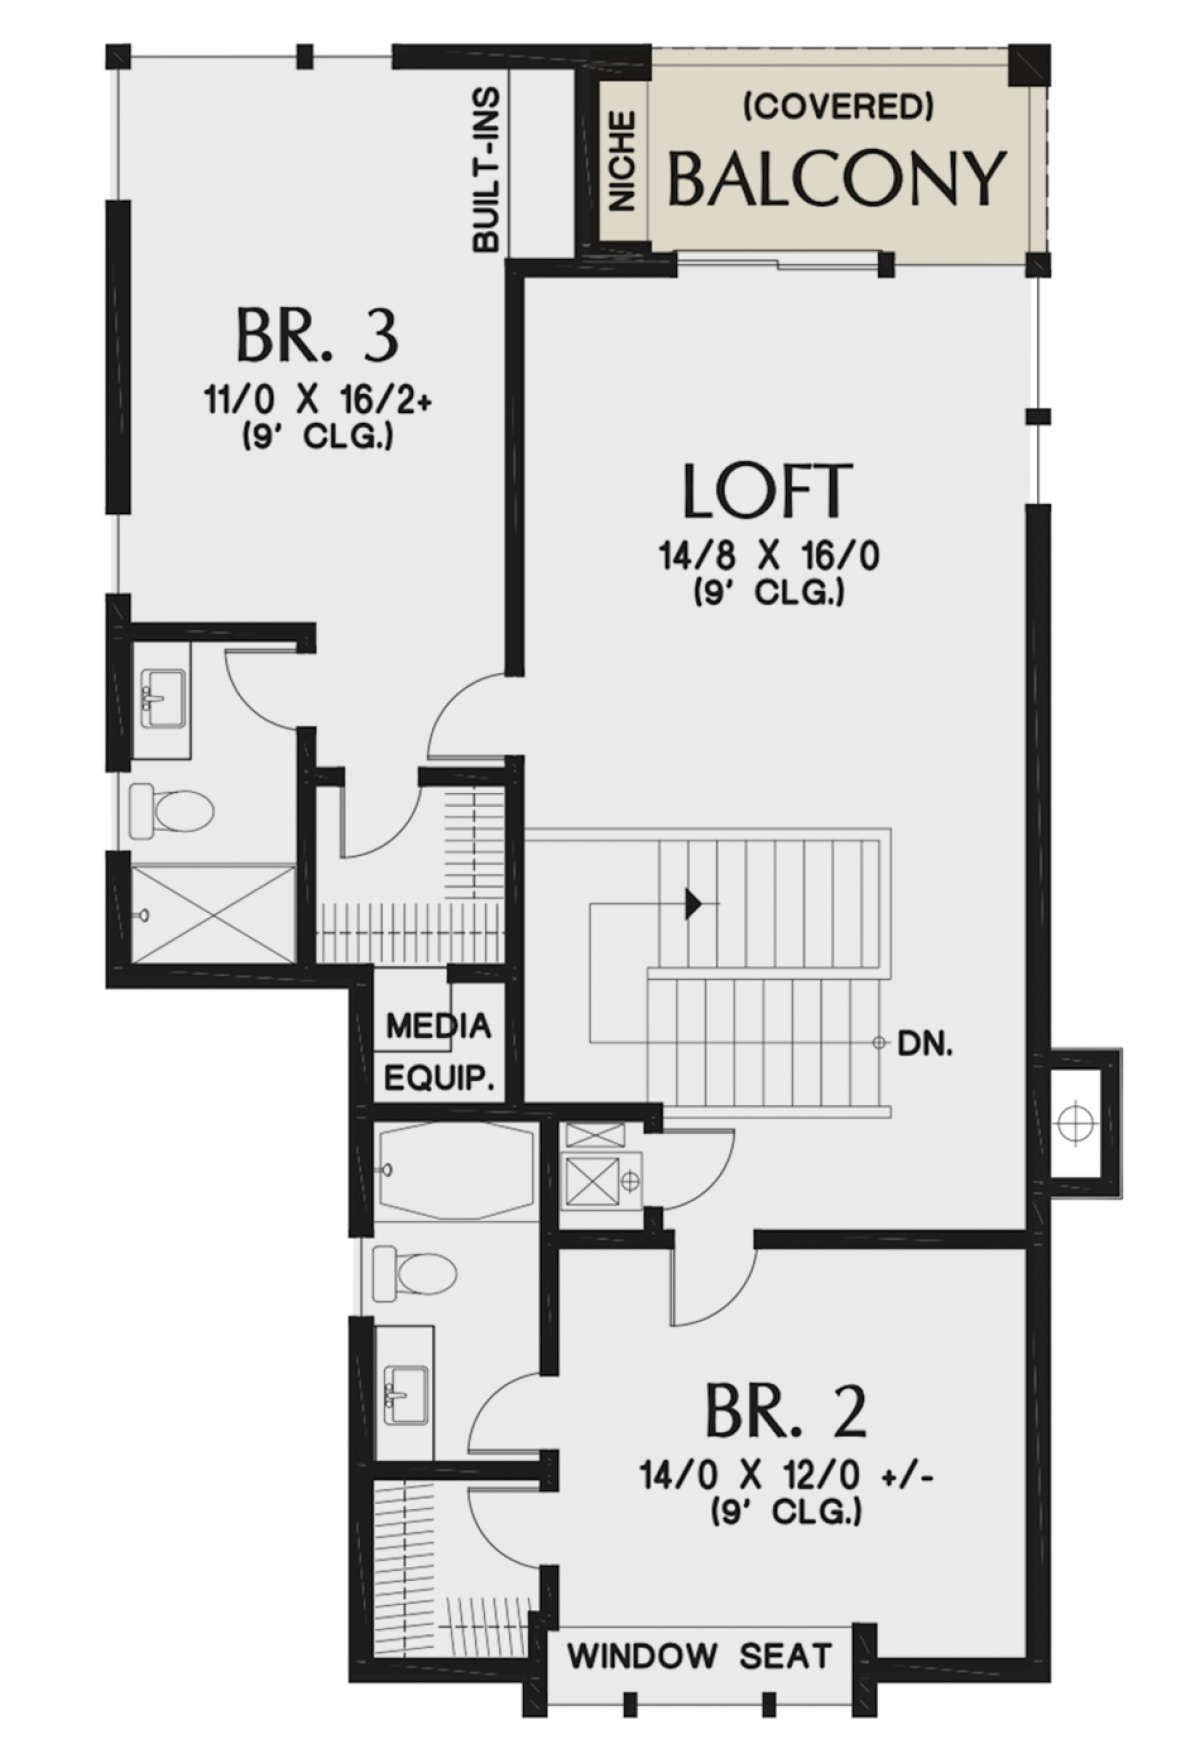 House Plan 2559 00836 Contemporary Plan 3 882 Square Feet 4 Bedrooms 4 Bathrooms Open Floor House Plans House Plans Best House Plans